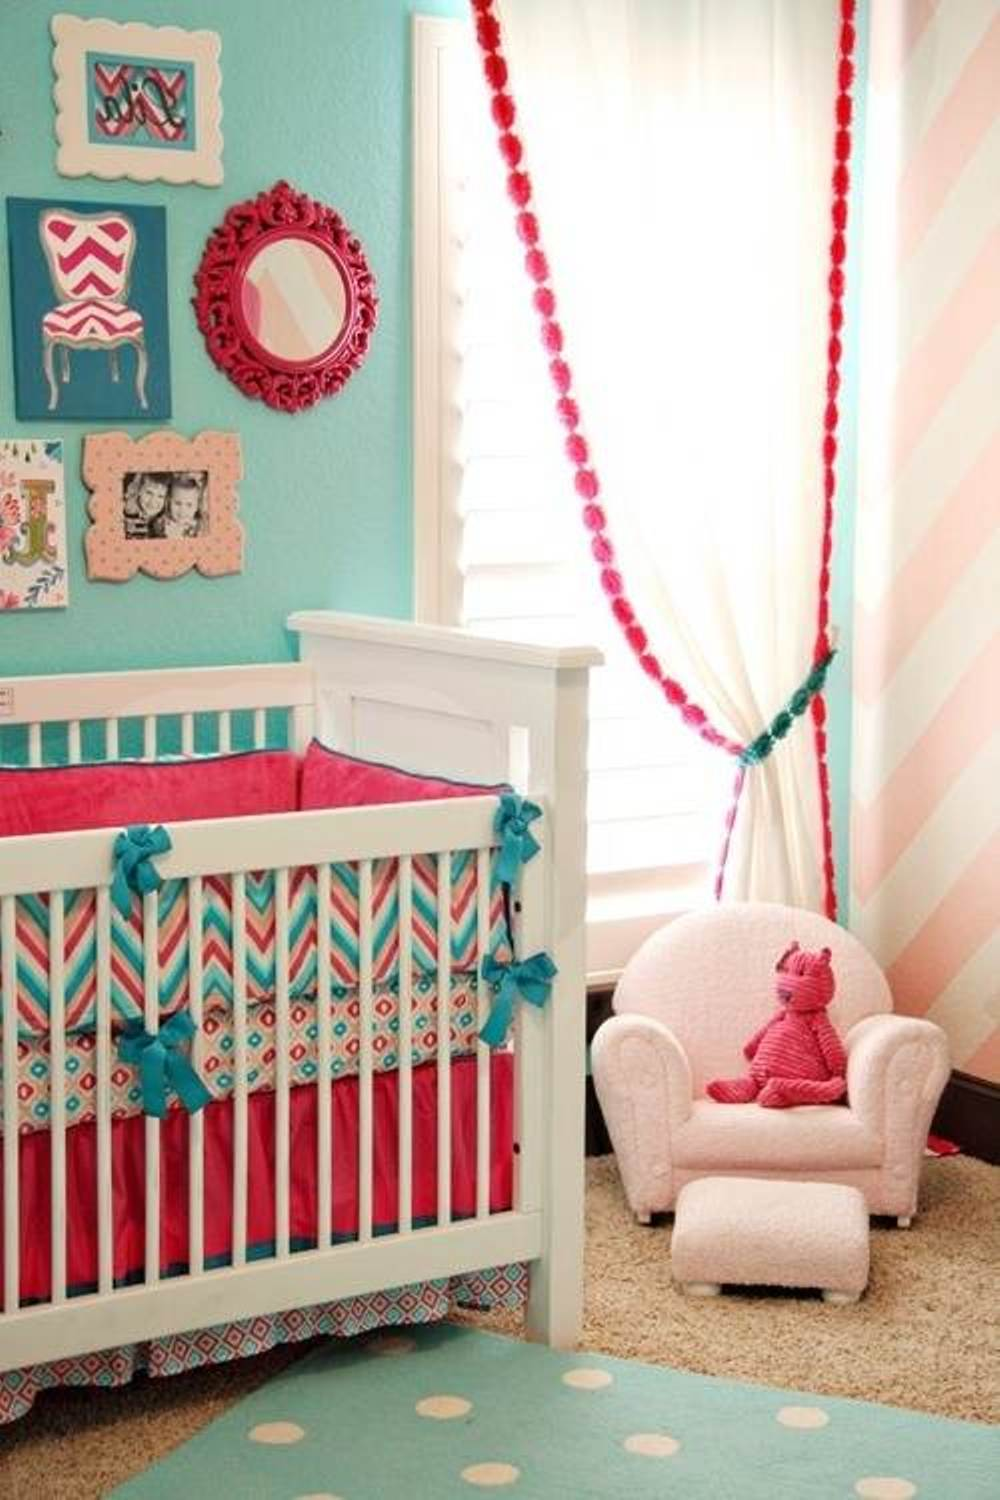 25 baby bedroom design ideas for your cutie pie - Baby girl room decor pictures ...